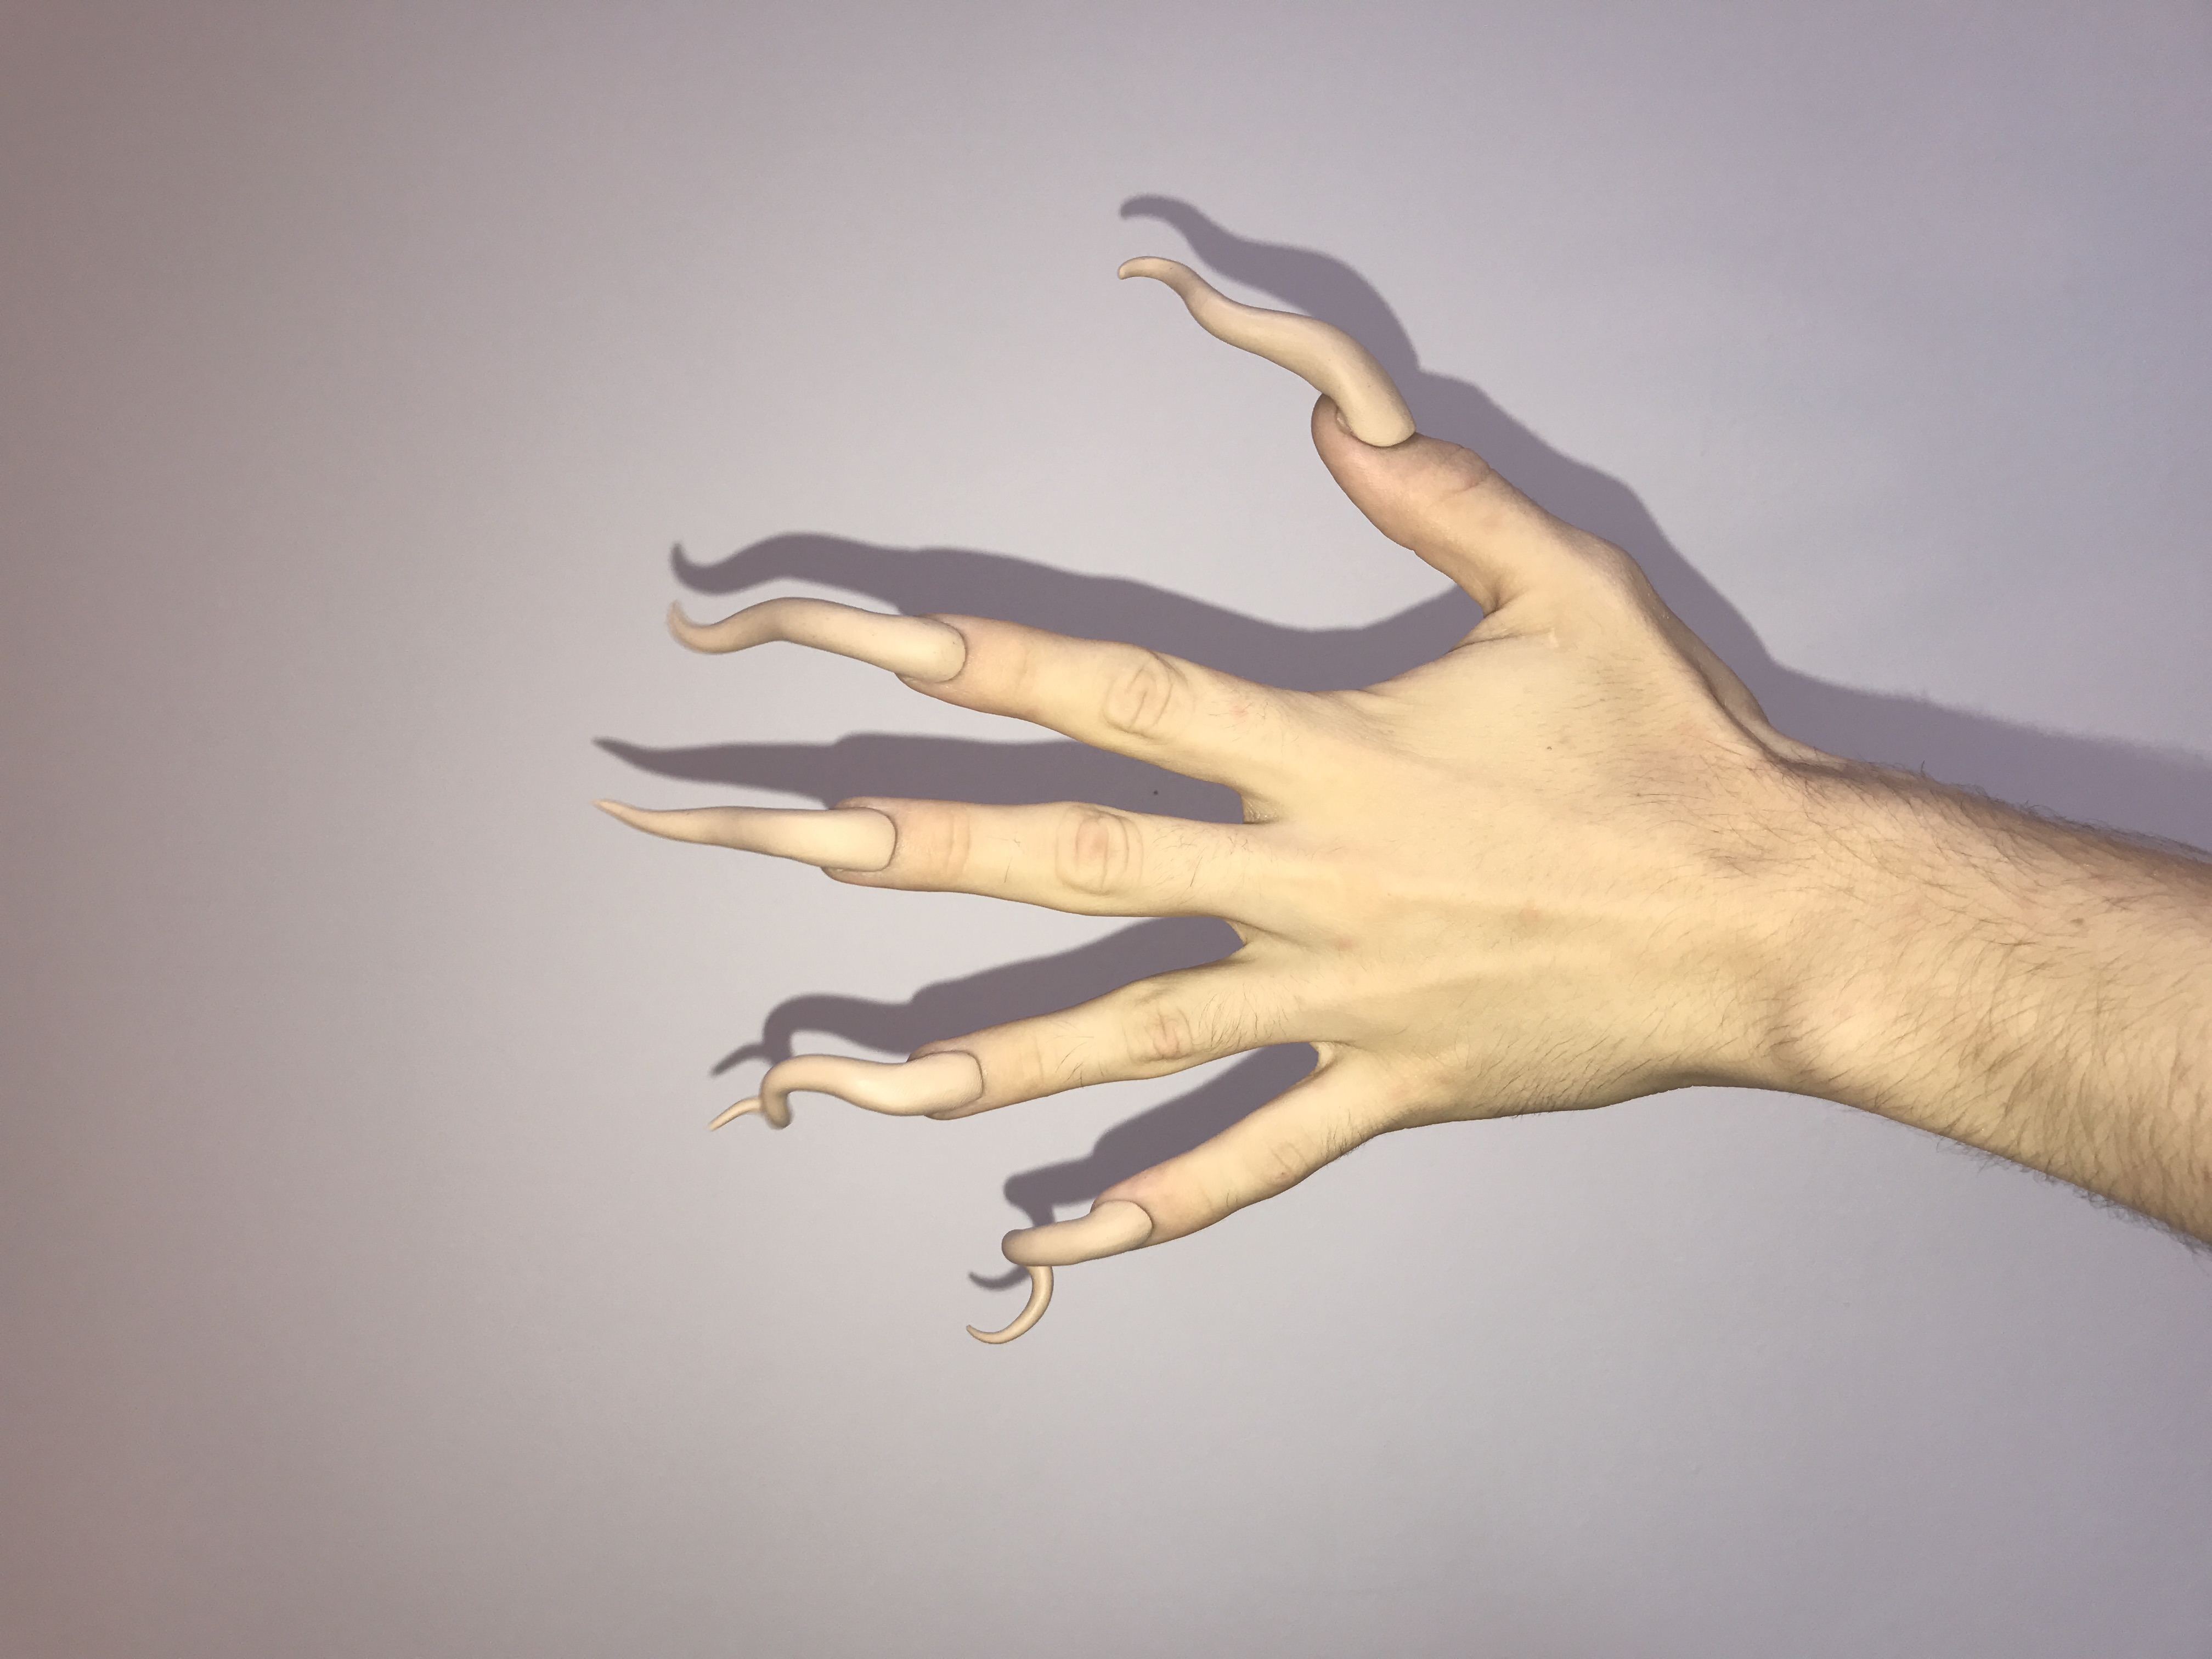 nails by juan\' makes manicures from fever dreams - i-D